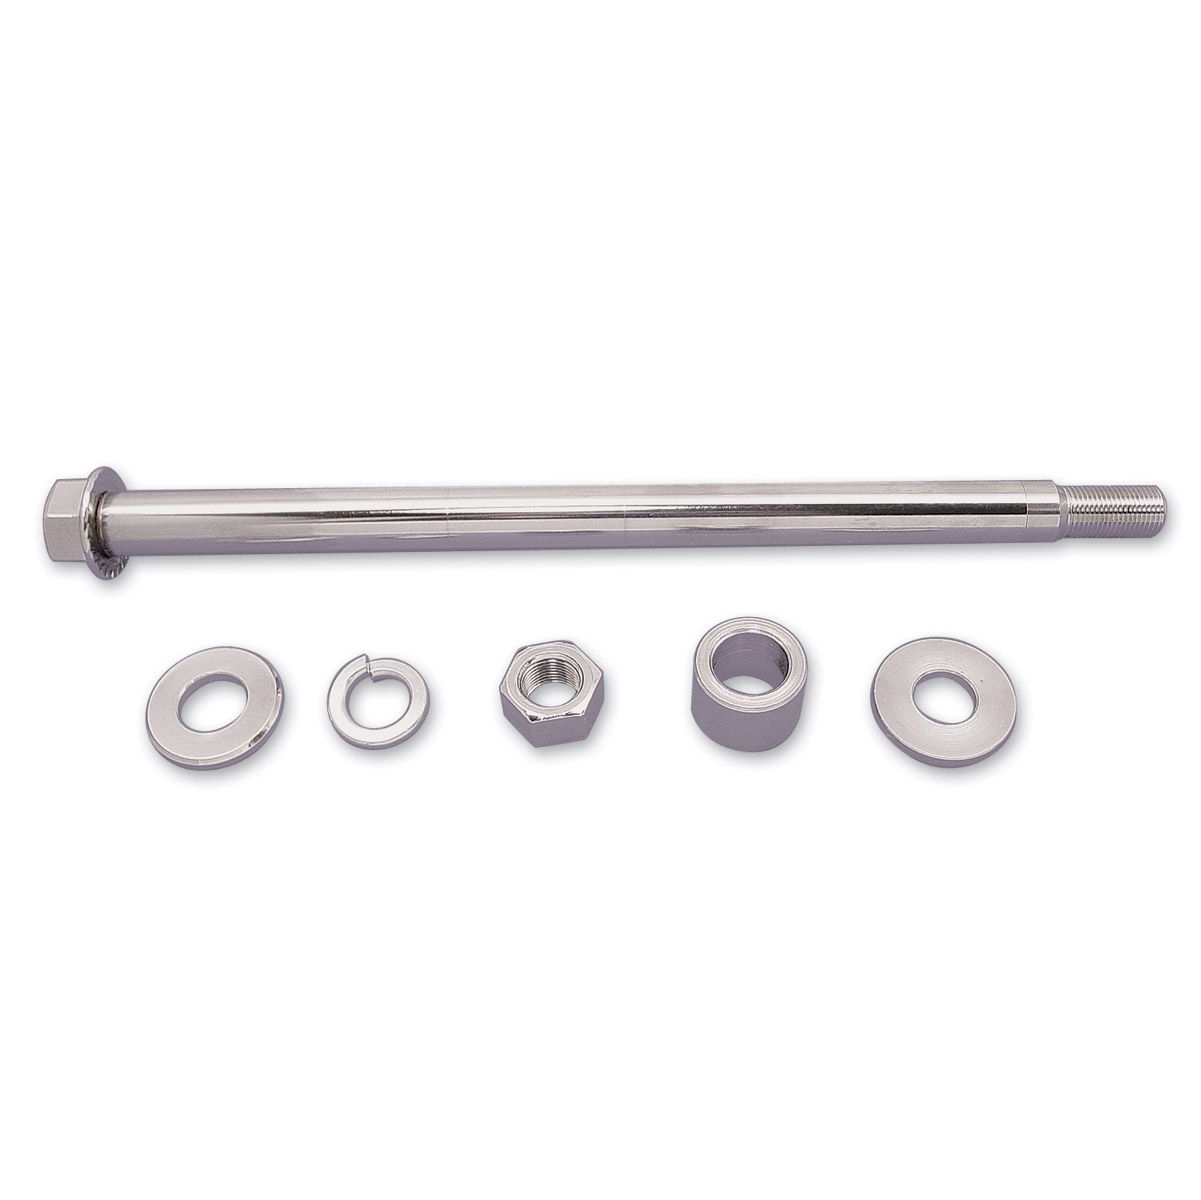 J&P Cycles® Hardware & Rear Axle Kit